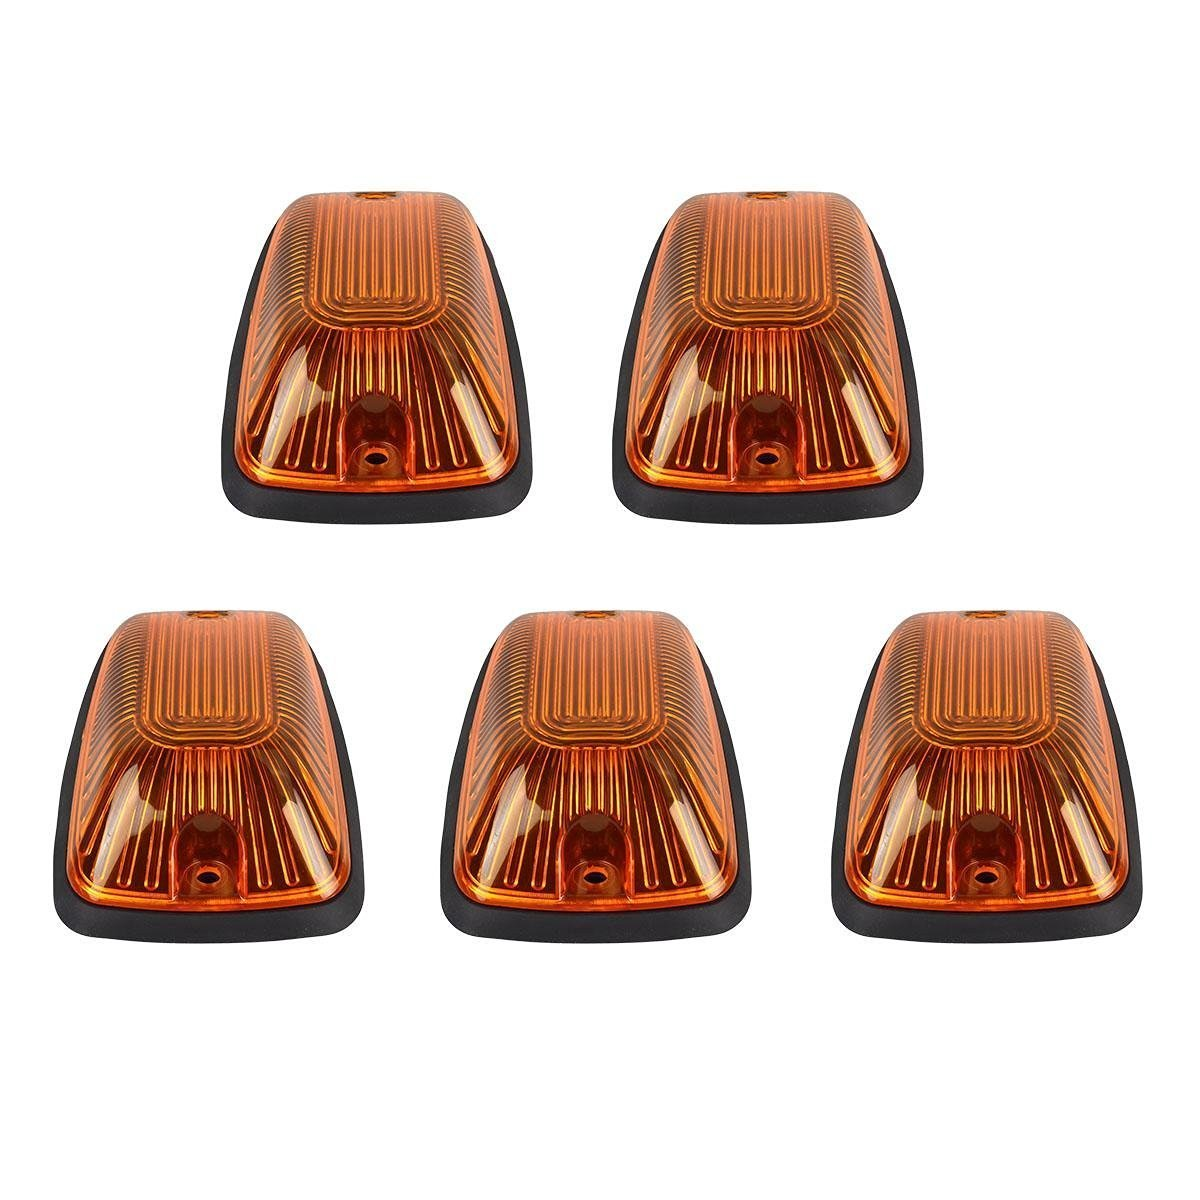 5pcs Amber Lens Cab Roof Marker Lights, KOMAS Roof Top Lamp Clearance Running Light Replacement for Truck SUV 1988-2002 Chevrolet Silverado GMC C/K (Amber Cover + Base) KMA CAB LIGHTS-103